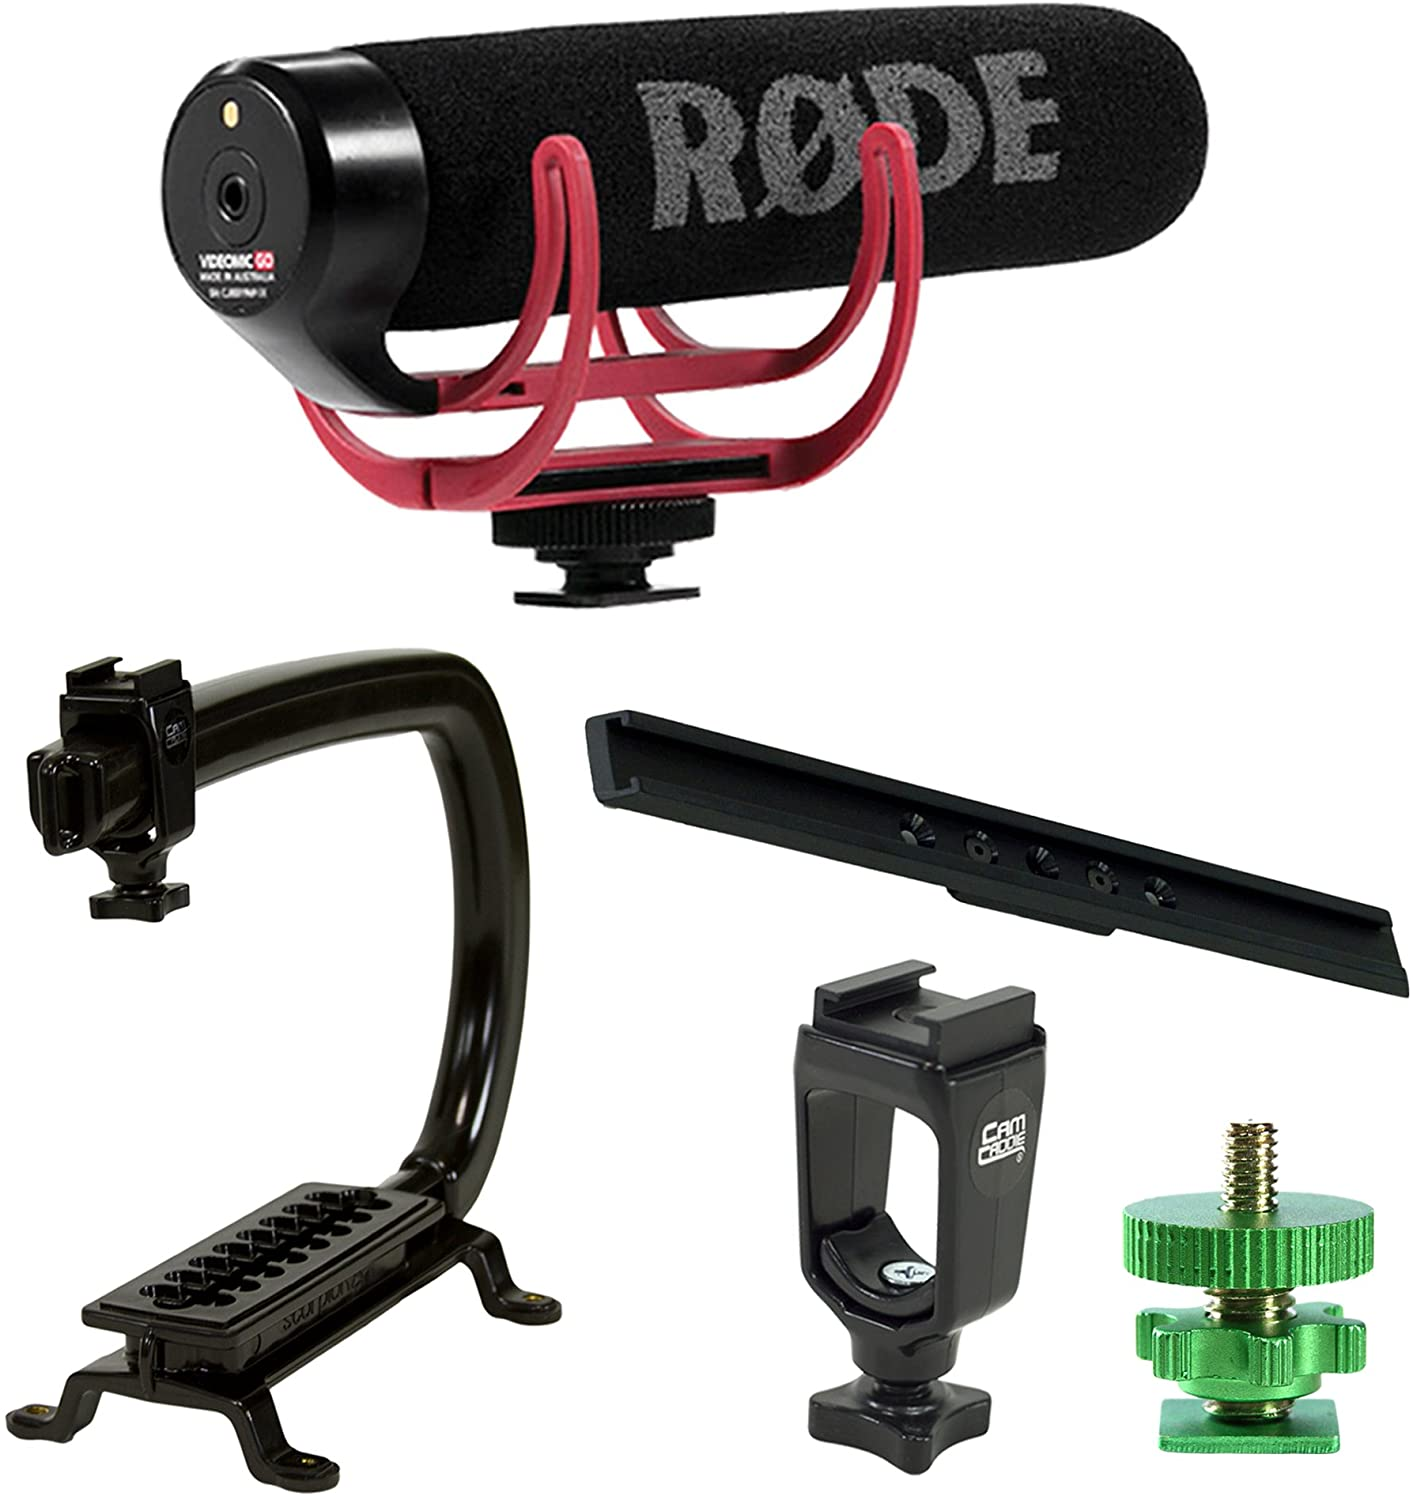 Cam Caddie Scorpion EX Starter Kit + RODE VideoMic GO Camera Stabilizer Bundle